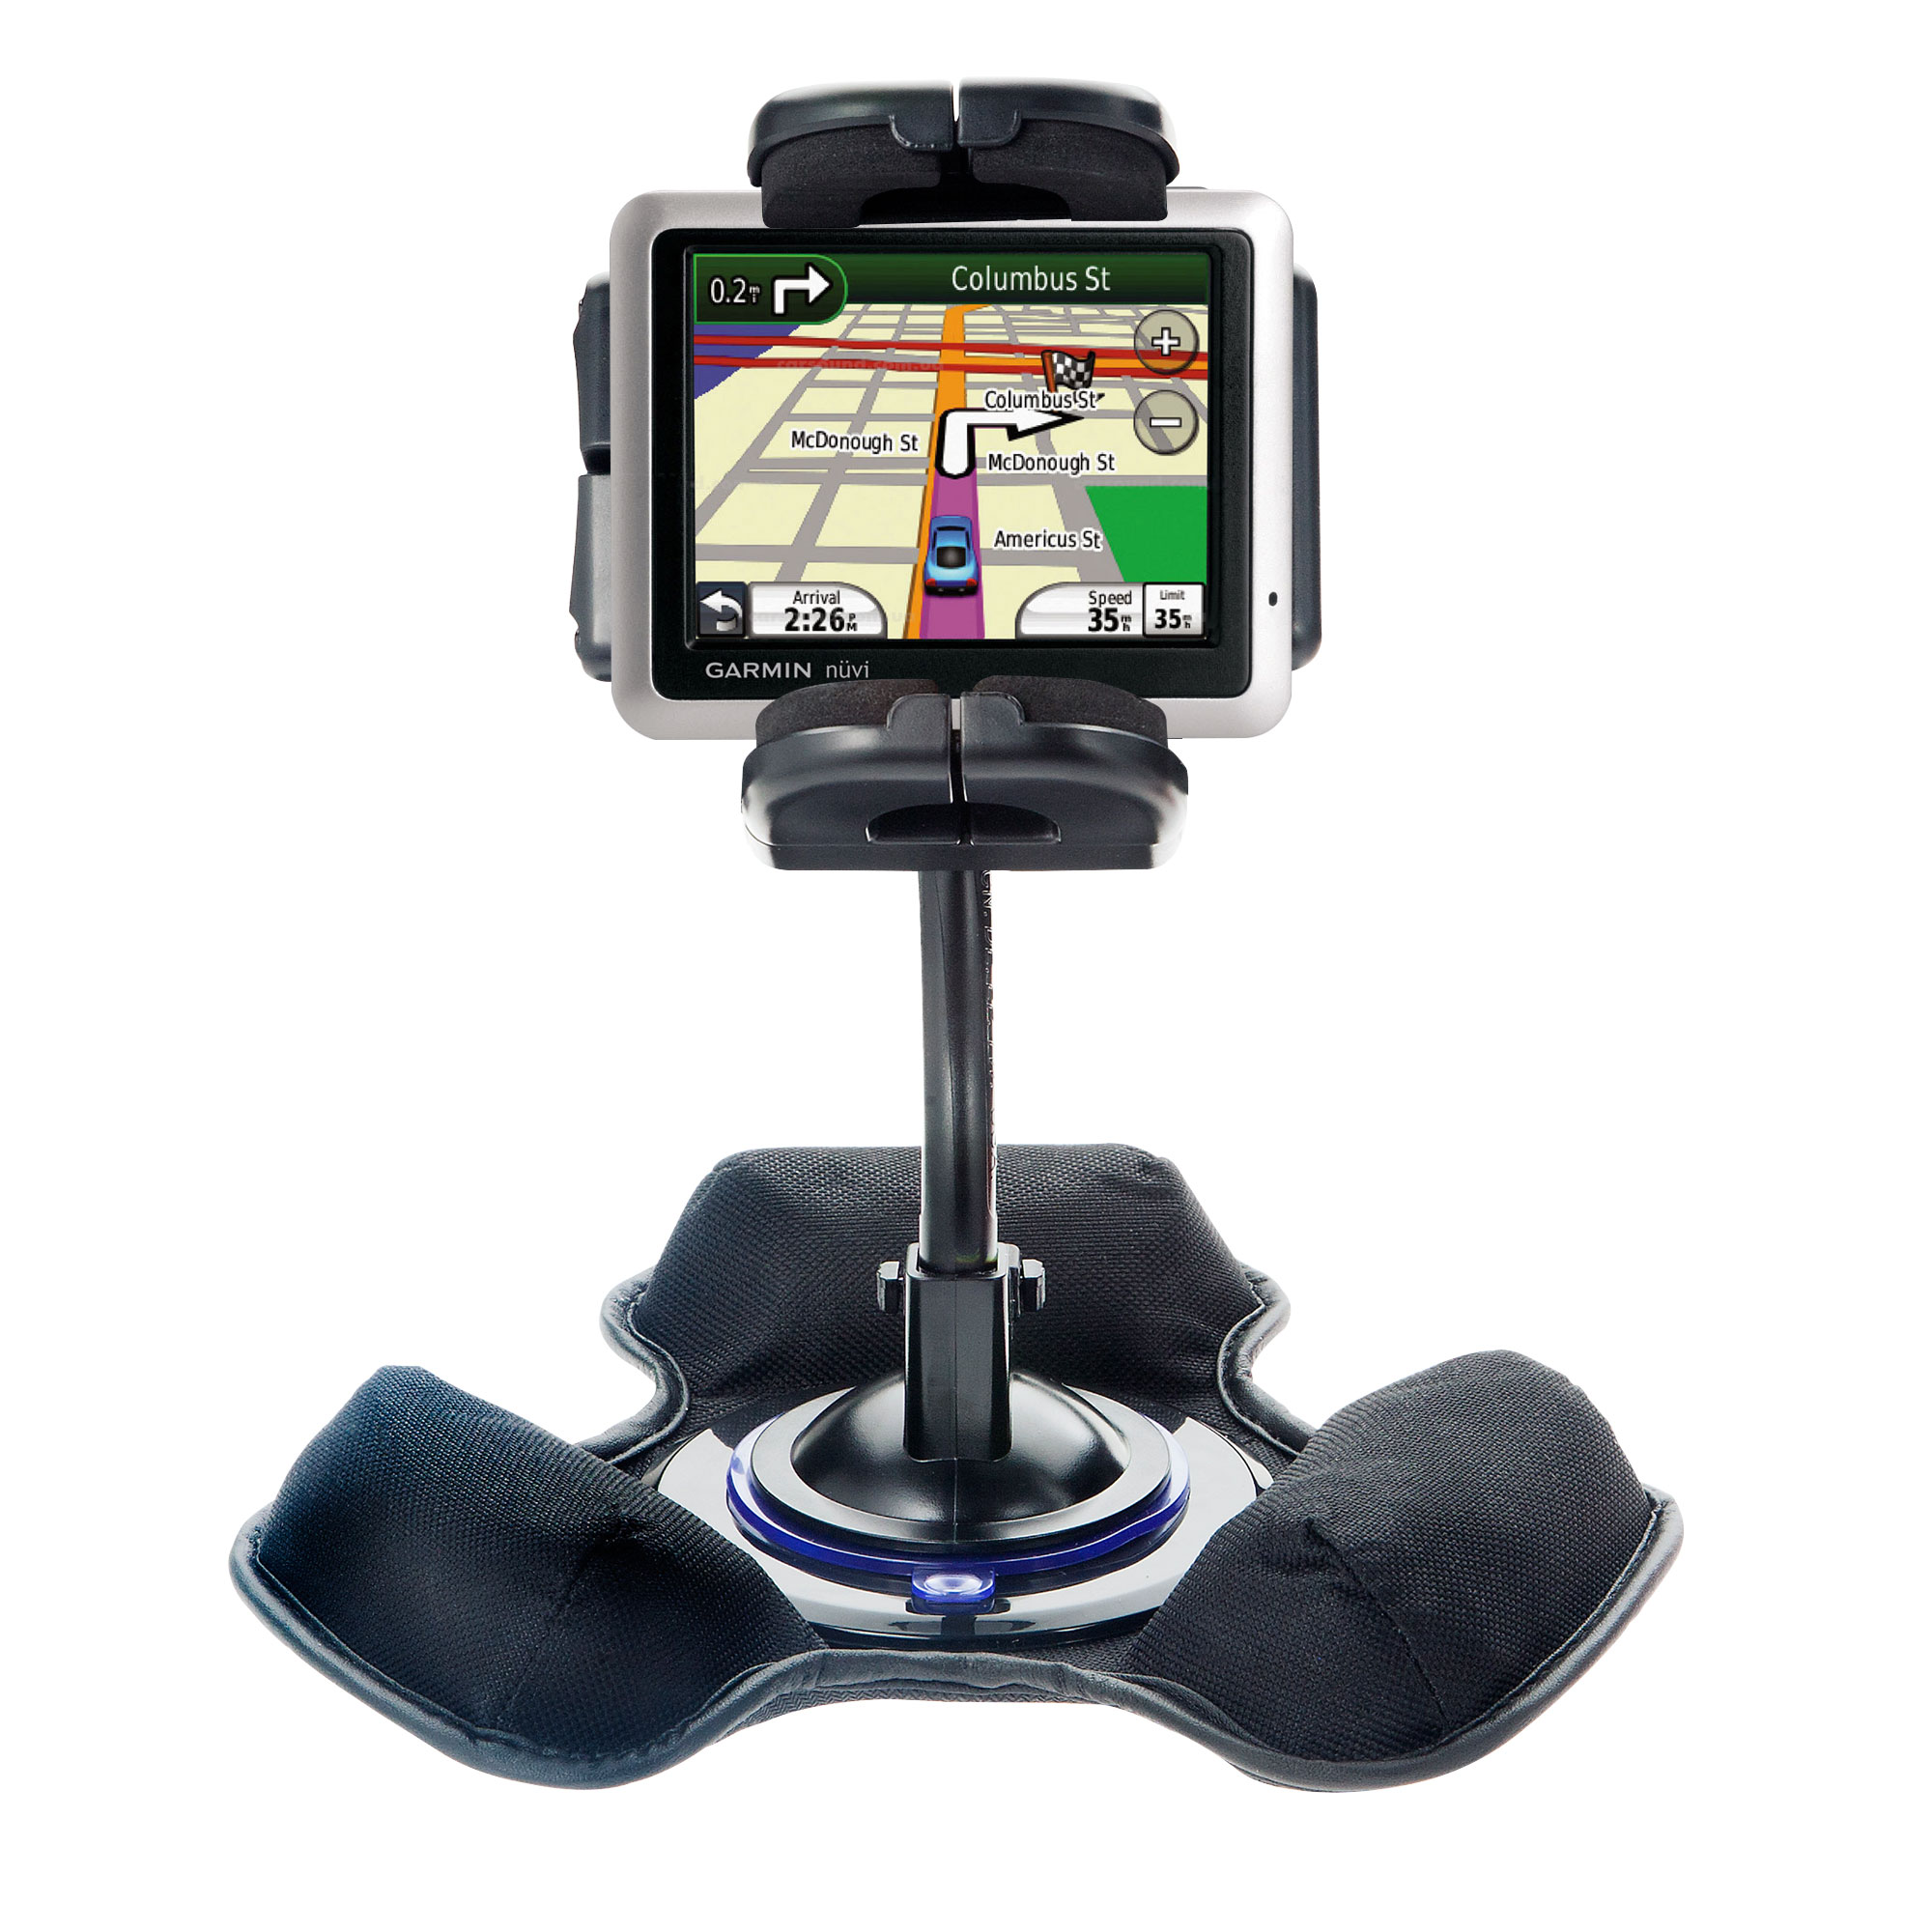 Dash and Windshield Holder compatible with the Garmin Nuvi 1250